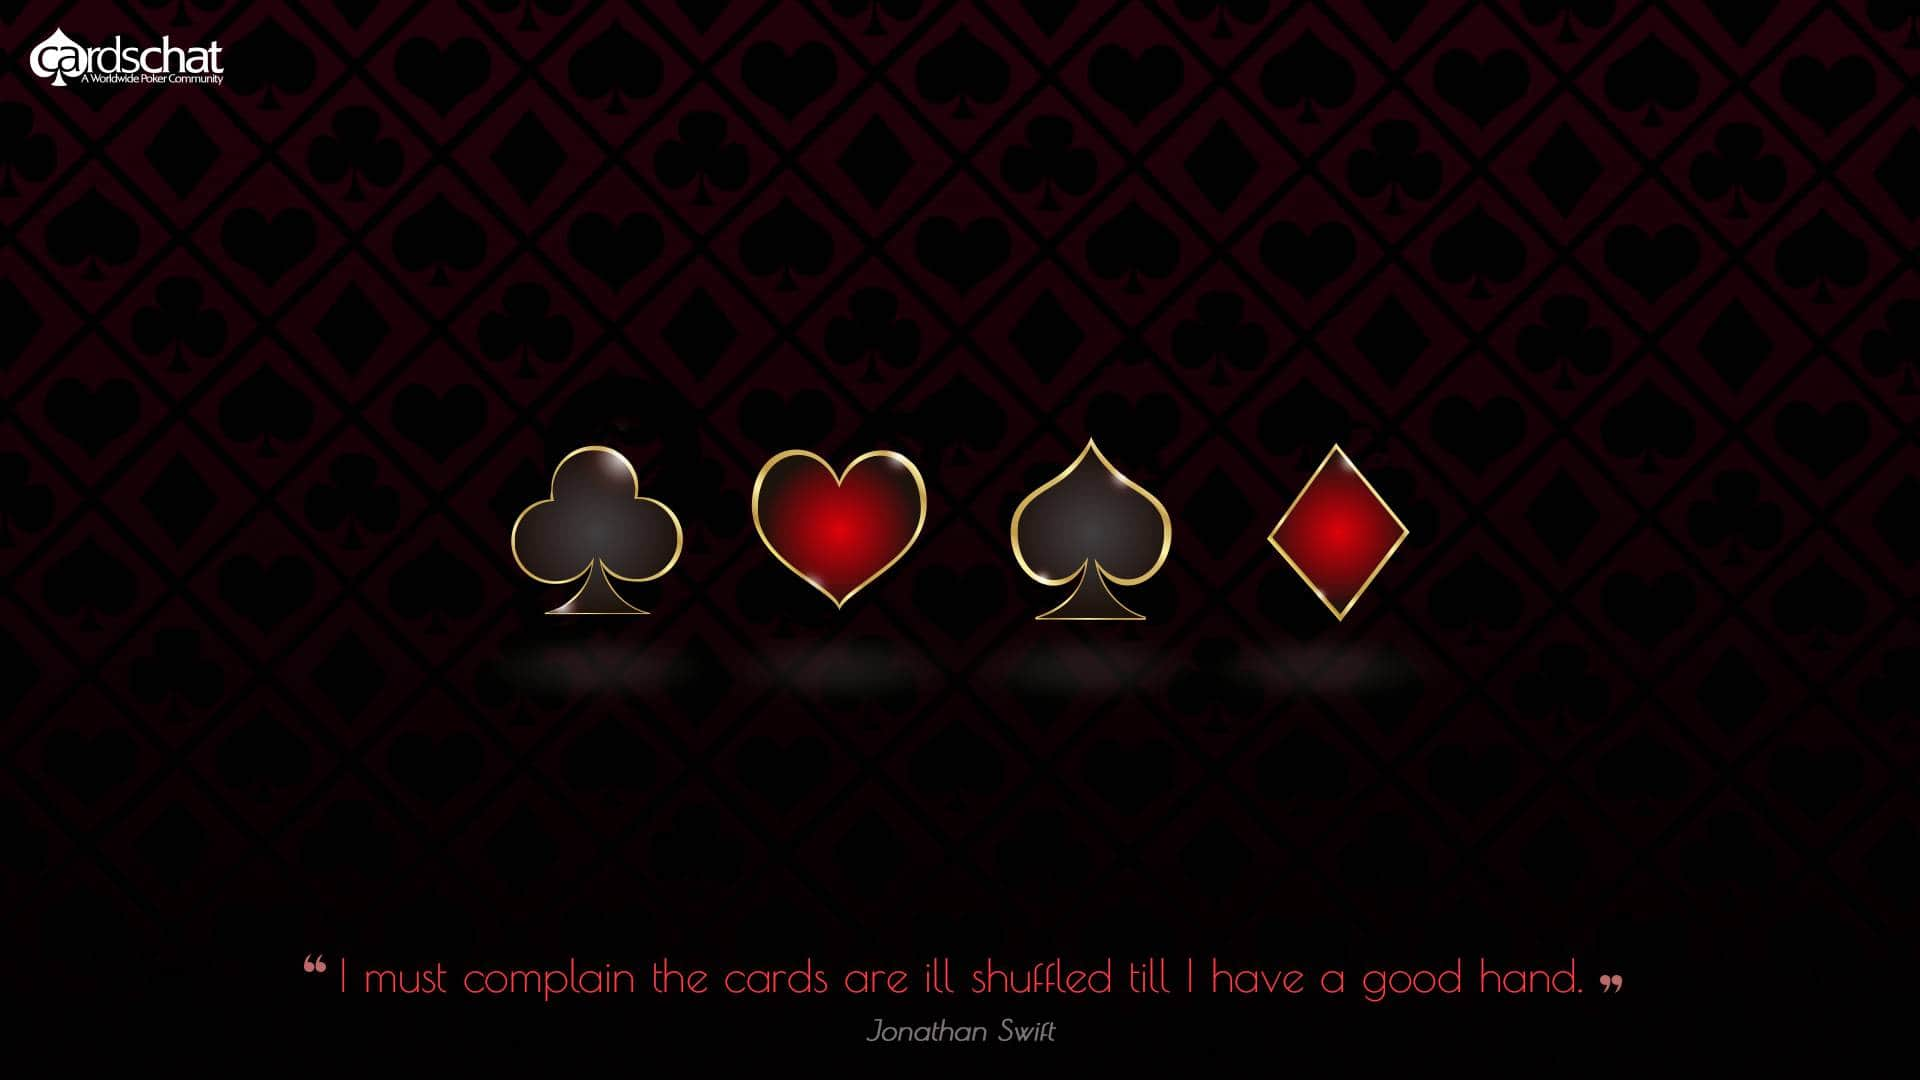 Quotes Wallpaper For Mobile Poker Wallpapers Free For Desktop Amp Mobile From Cardschat